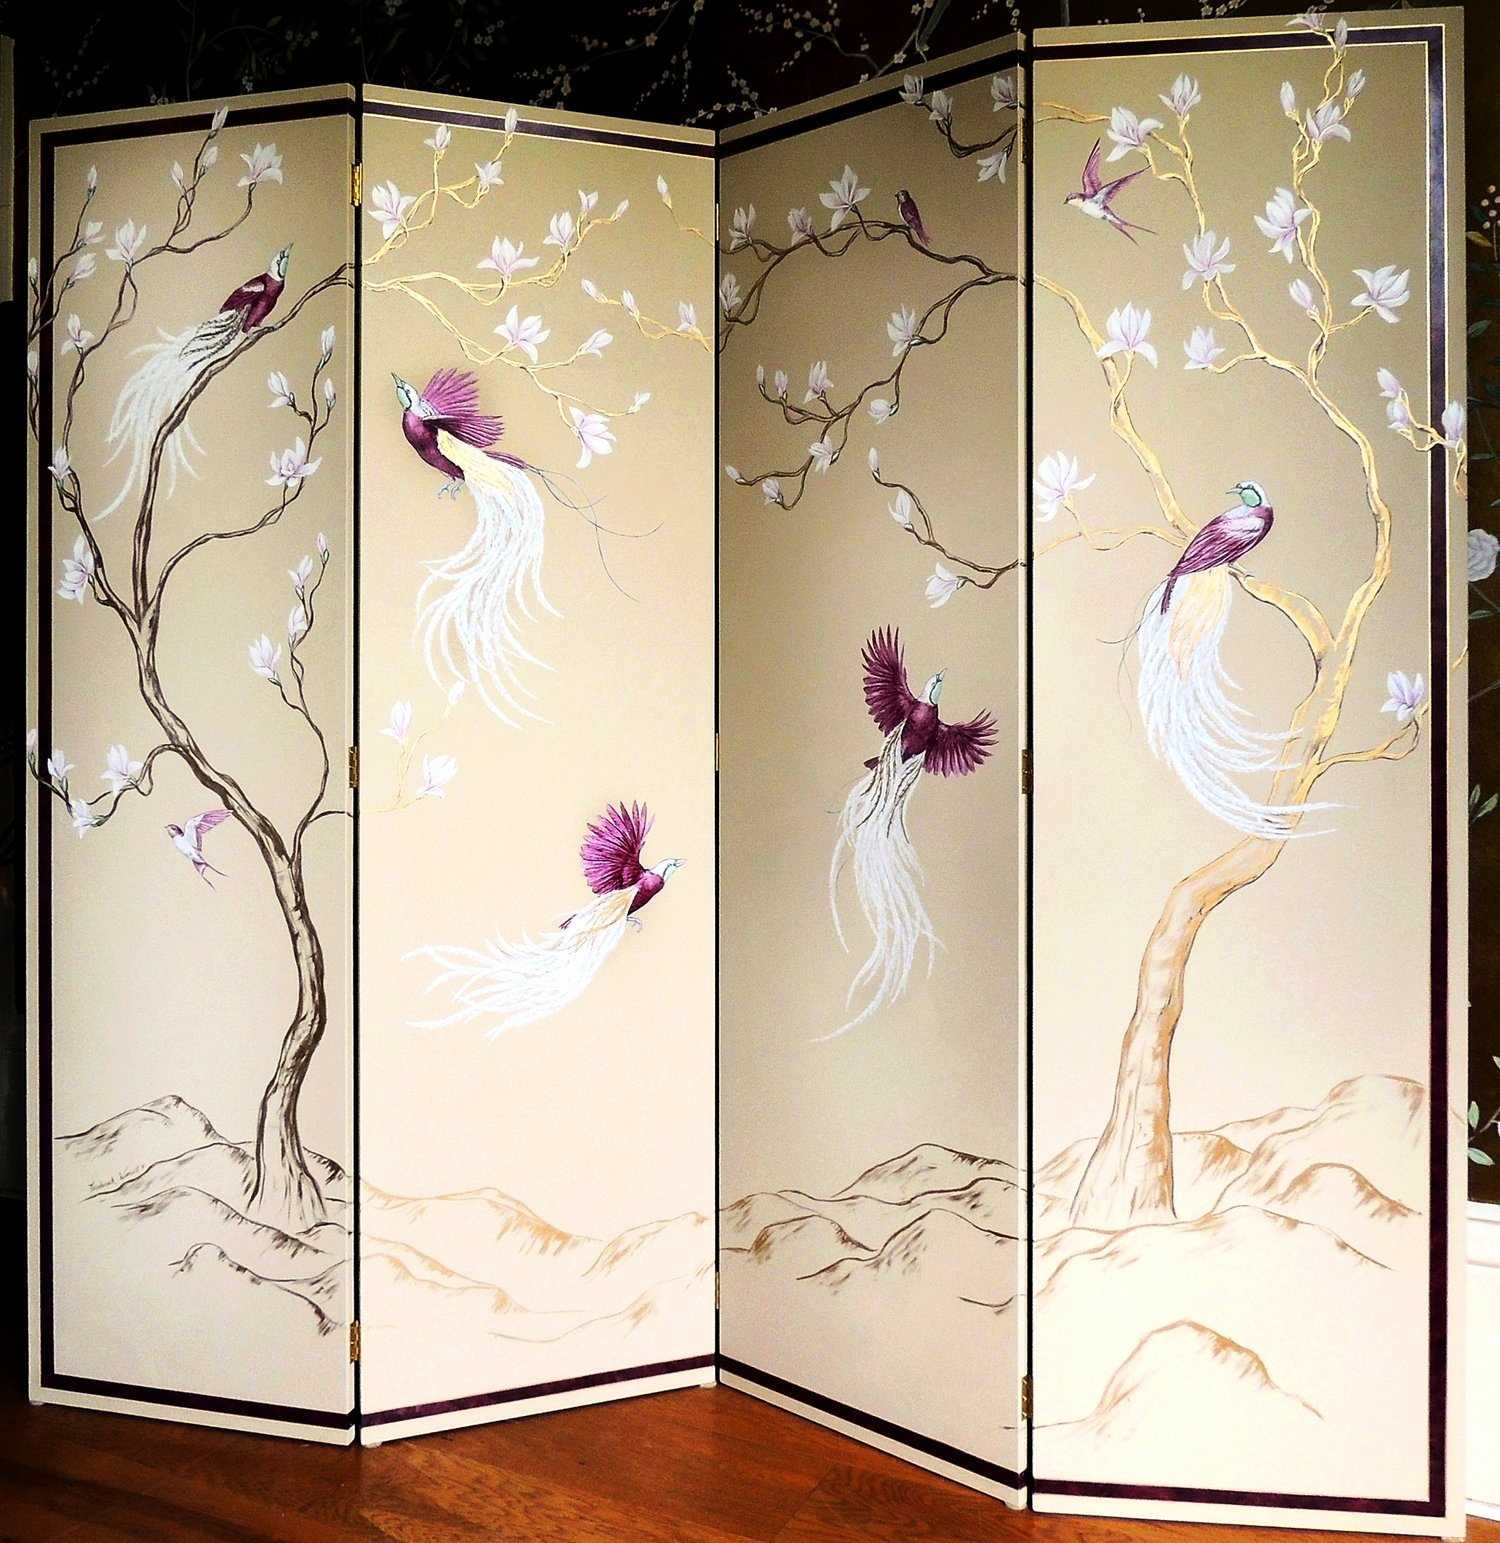 Magnolia+and+Birds+of+Paradise+Screen++Frederick+Wimsett+-+murals+and+artistic+design+1+